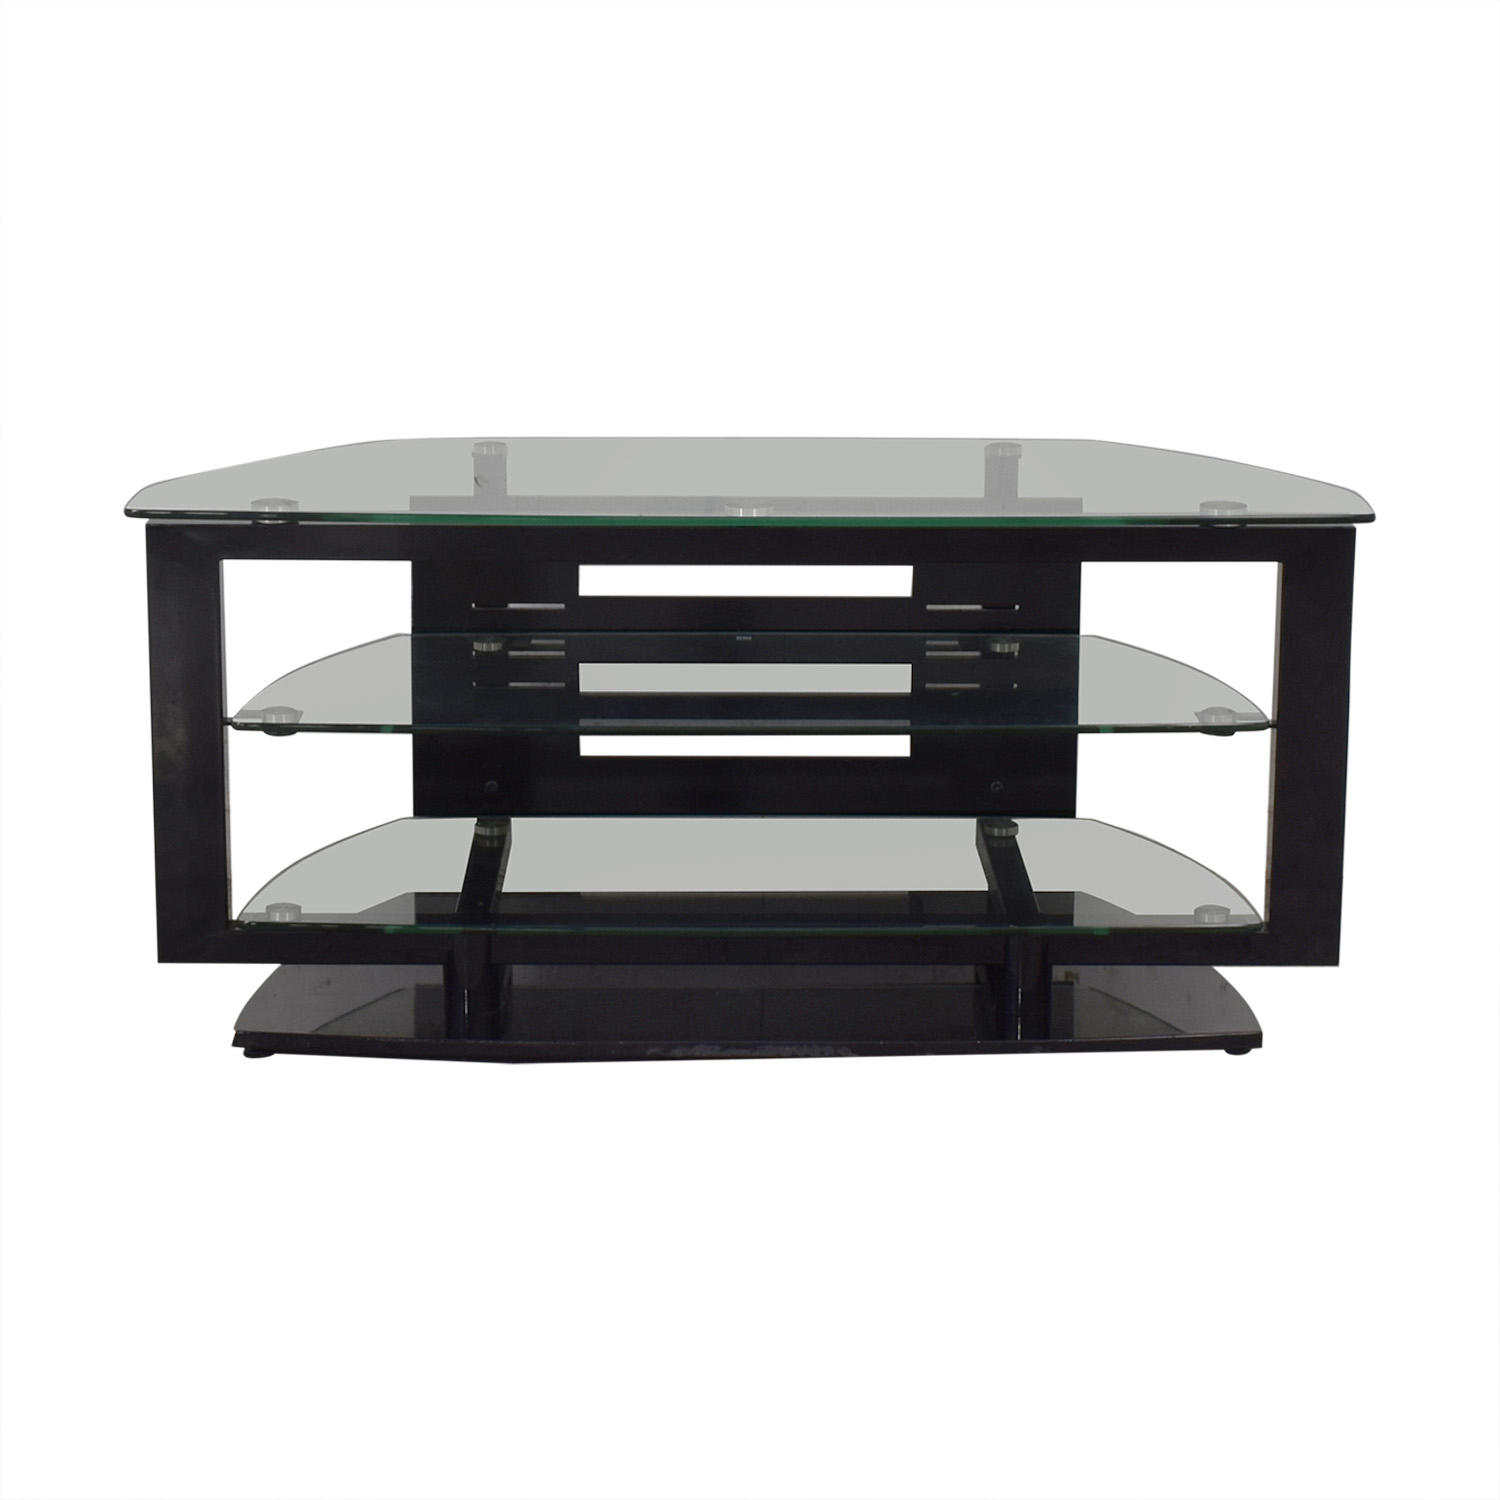 DCI Modern Glass Top TV Stand dimensions